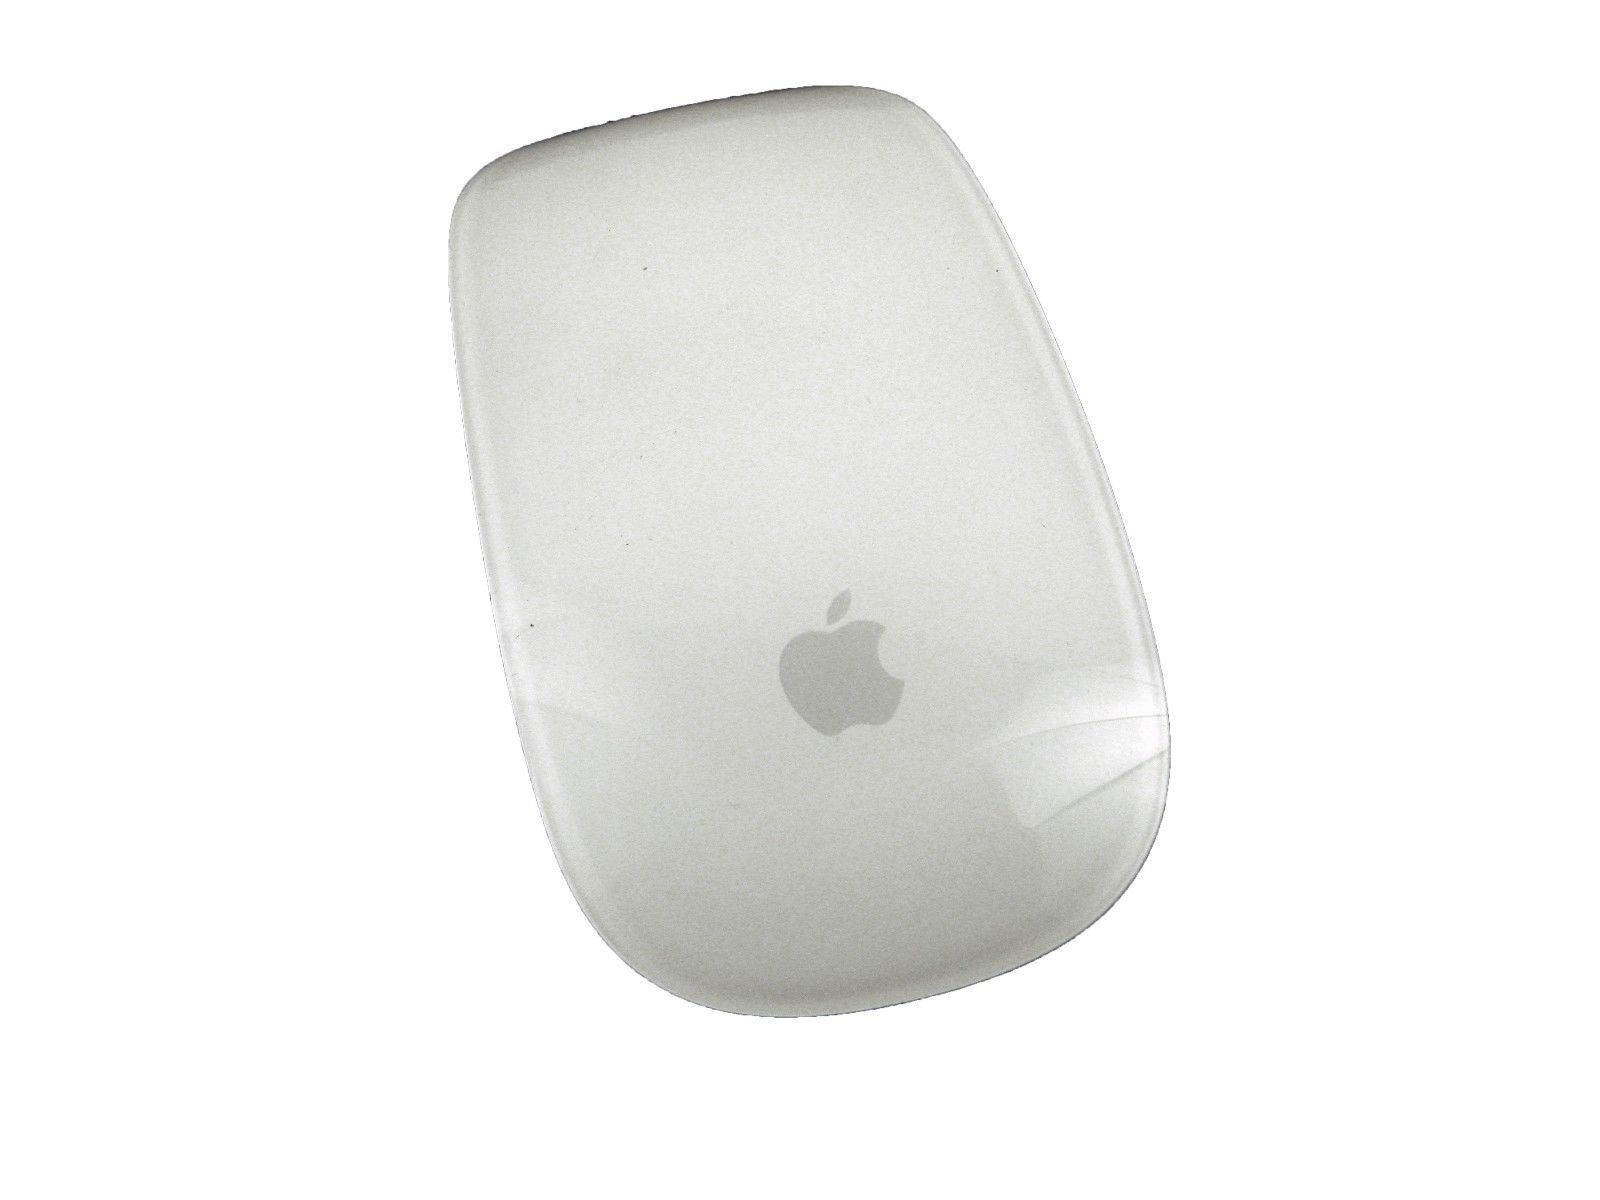 Apple A1296 Wireless Bluetooth Multi-Touch Laser Magic Mouse